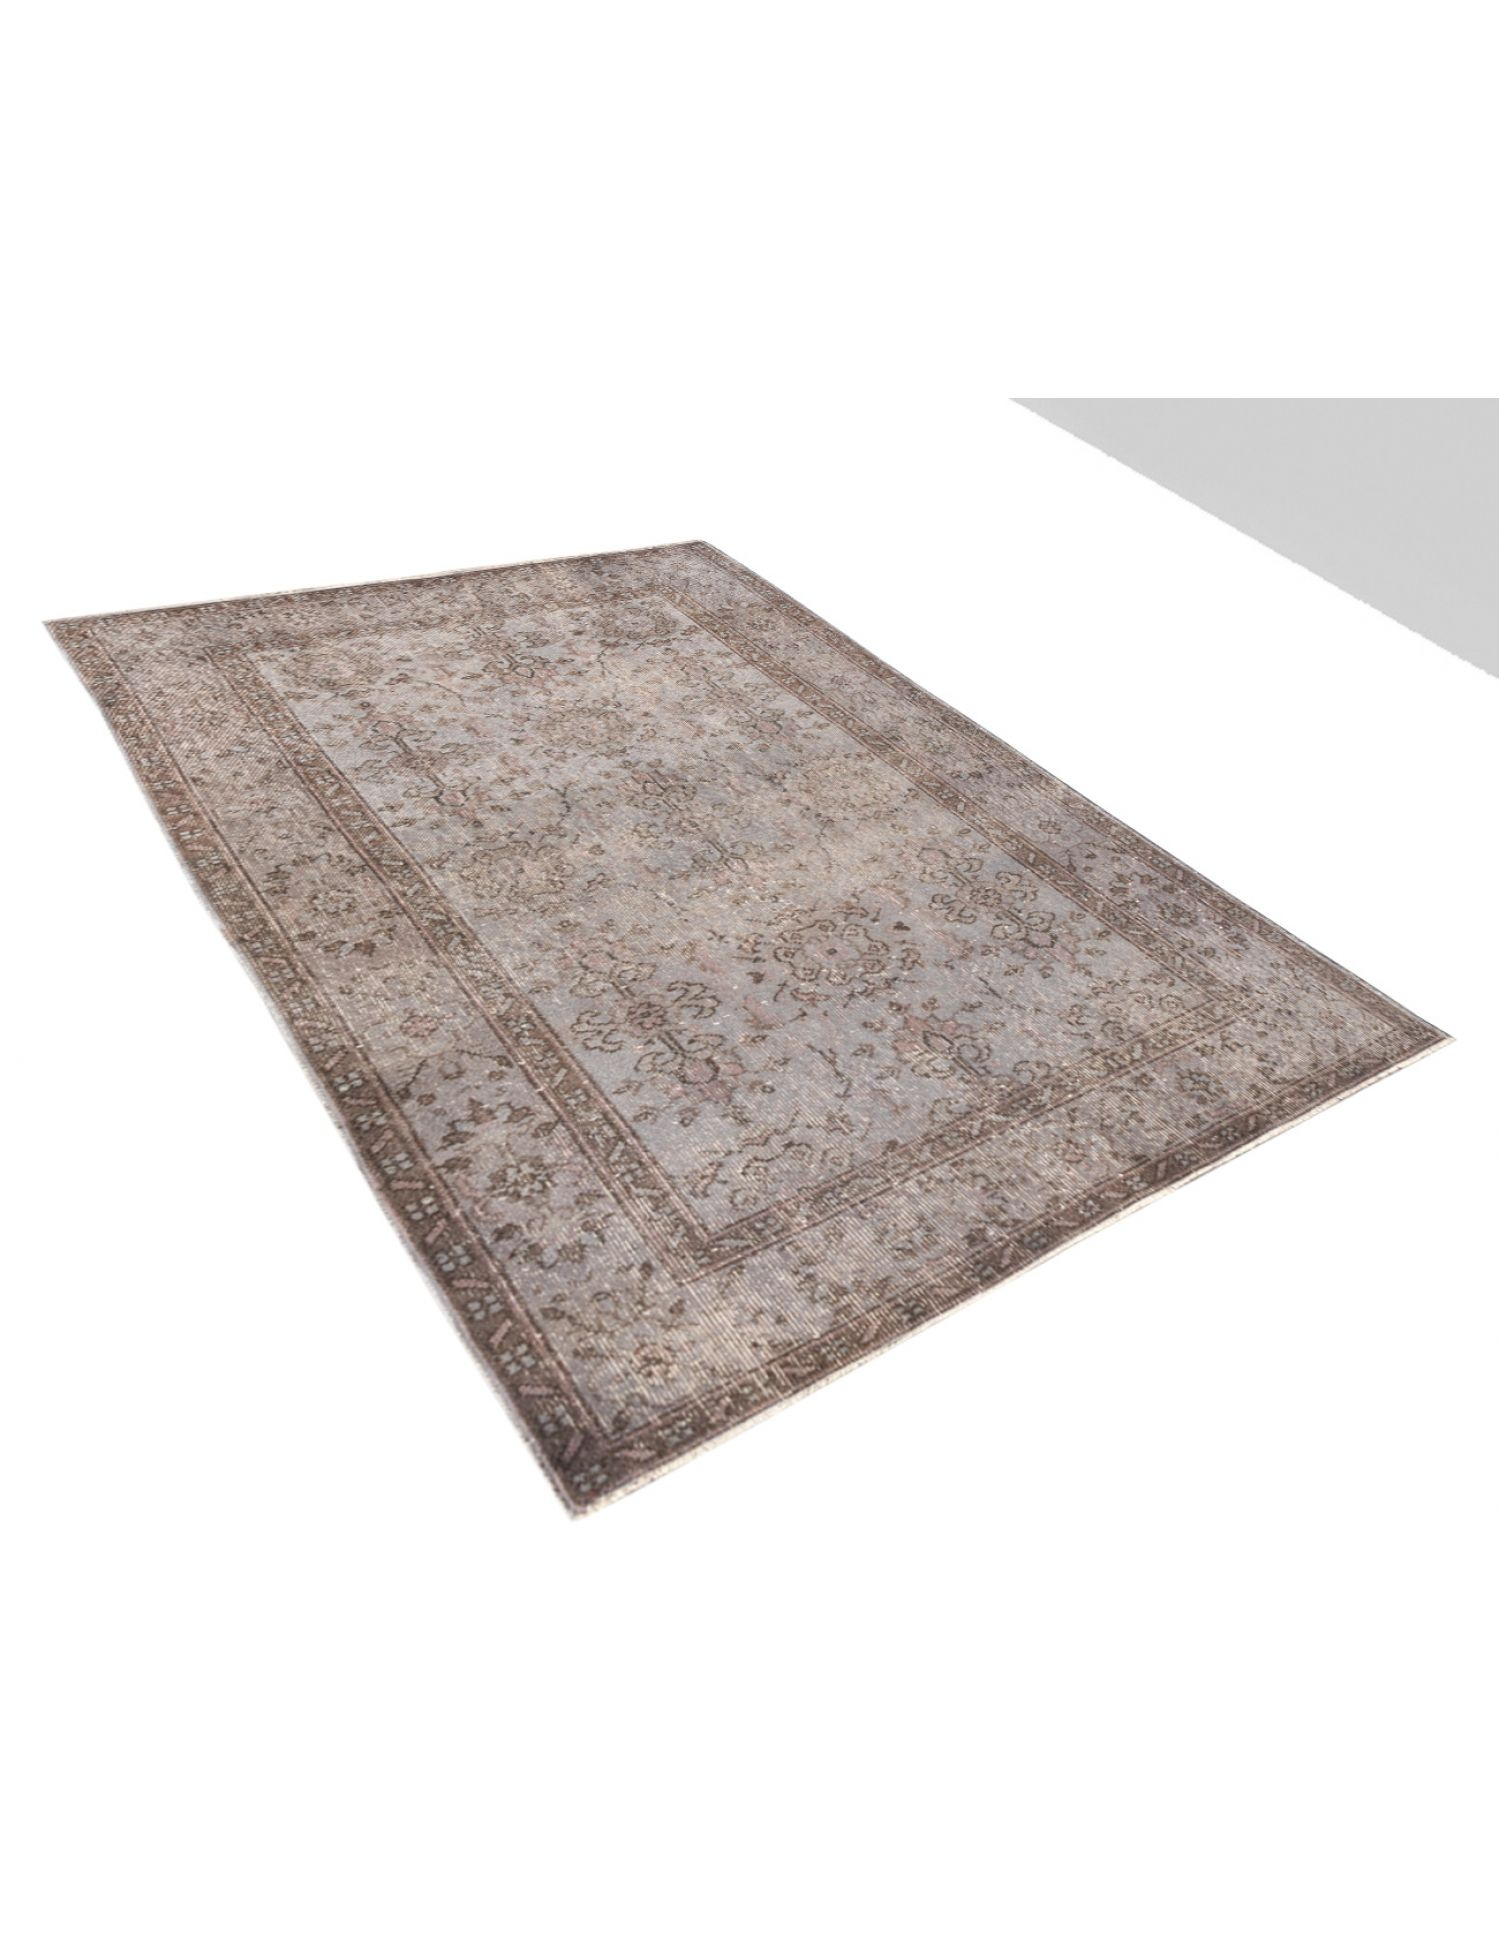 Vintage Carpet  grey <br/>210 x 118 cm